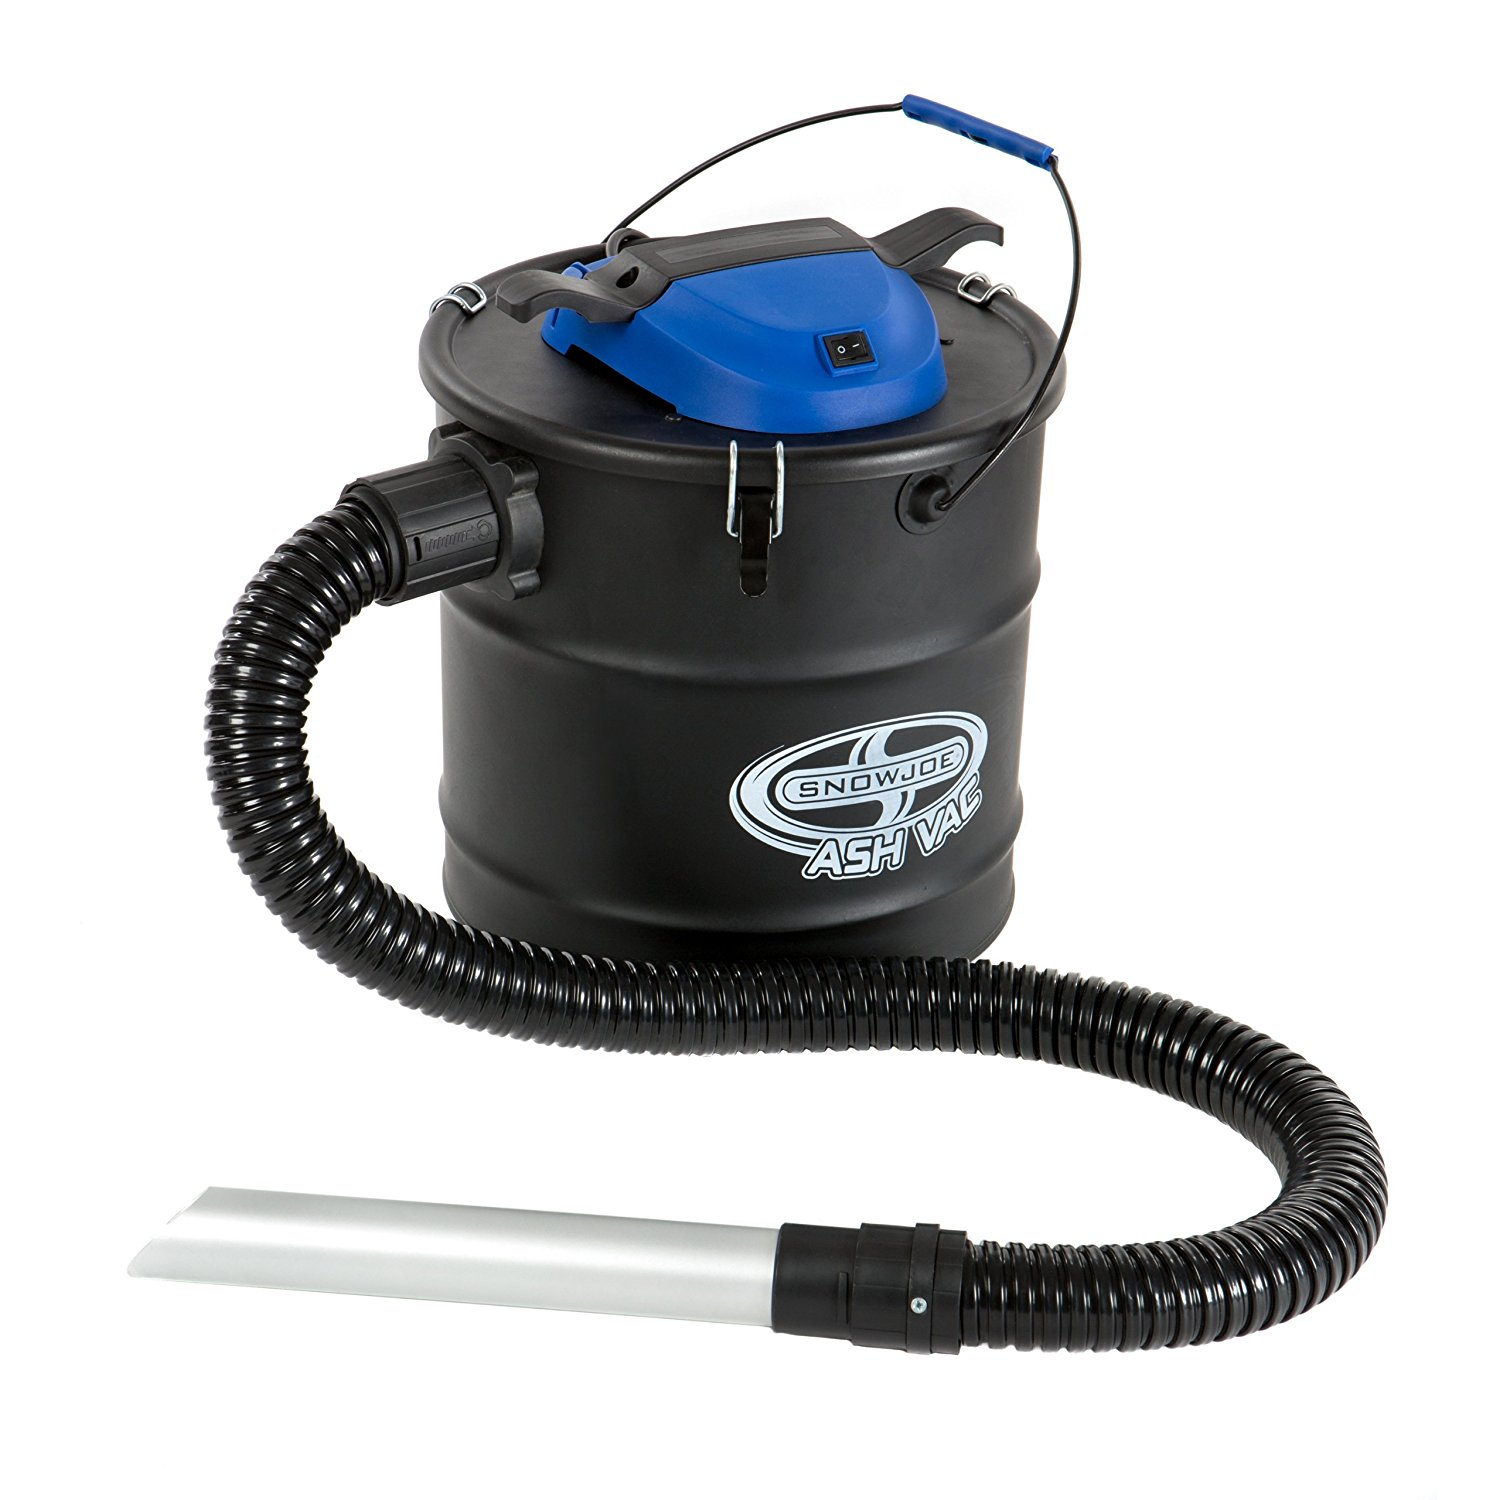 Snow Joe ASHJ201 4.8 Gallon 4 Amp Ash Vacuum